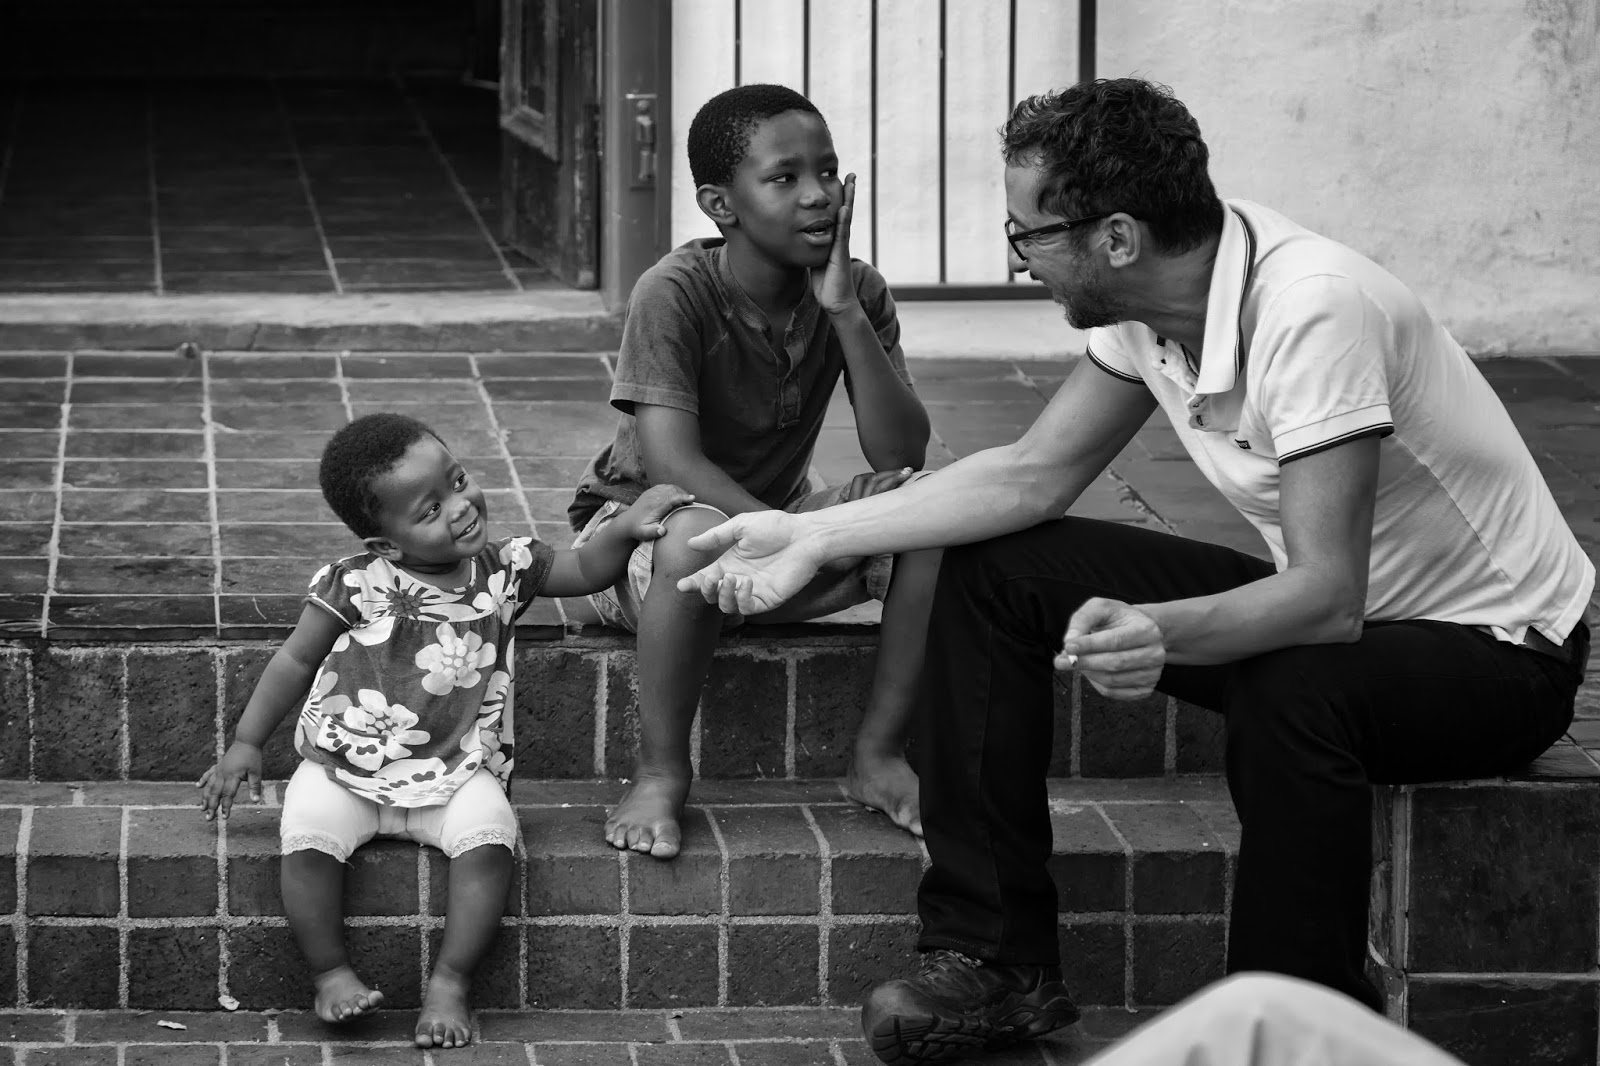 A little girl smiles coyly at a man while her brother looks on.